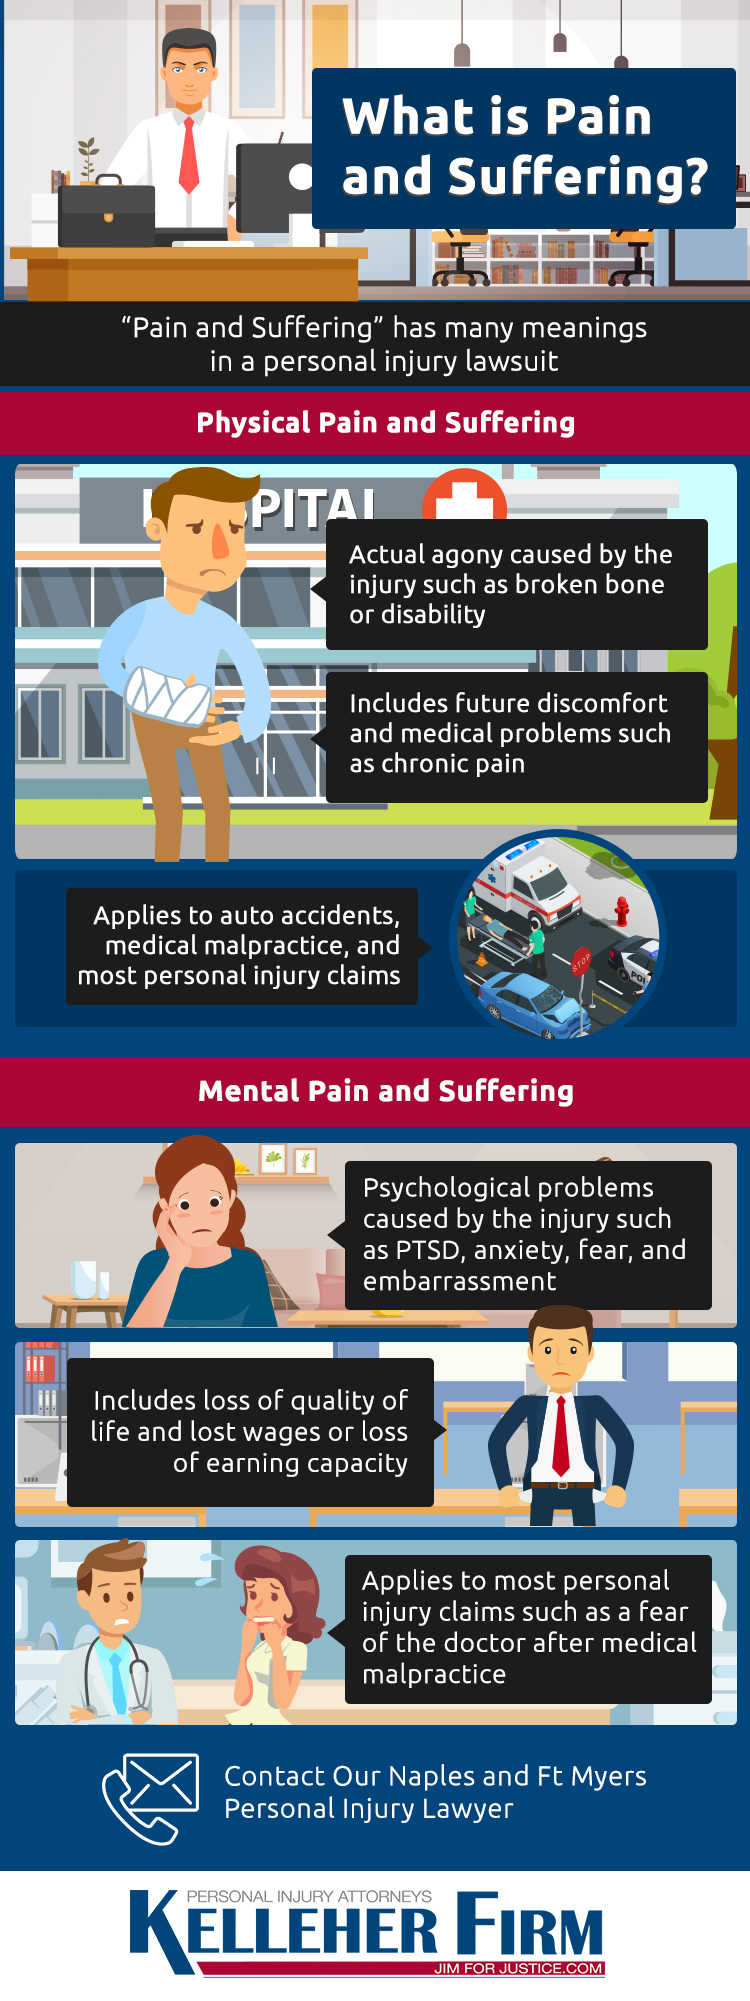 Infographic explains pain and suffering in a personal injury settlement